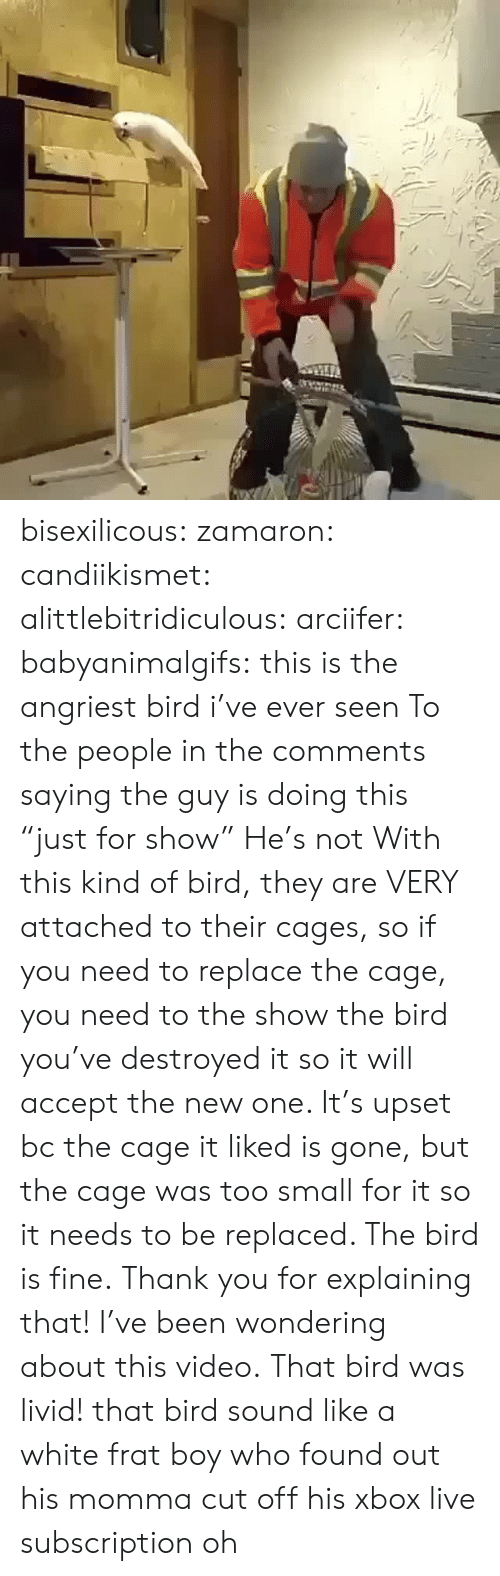 "Angriest: bisexilicous: zamaron:  candiikismet:  alittlebitridiculous:   arciifer:  babyanimalgifs:  this is the angriest bird i've ever seen  To the people in the comments saying the guy is doing this ""just for show"" He's not With this kind of bird, they are VERY attached to their cages, so if you need to replace the cage, you need to the show the bird you've destroyed it so it will accept the new one. It's upset bc the cage it liked is gone, but the cage was too small for it so it needs to be replaced. The bird is fine.   Thank you for explaining that!  I've been wondering about this video.   That bird was livid!   that bird sound like a white frat boy who found out his momma cut off his xbox live subscription  oh"